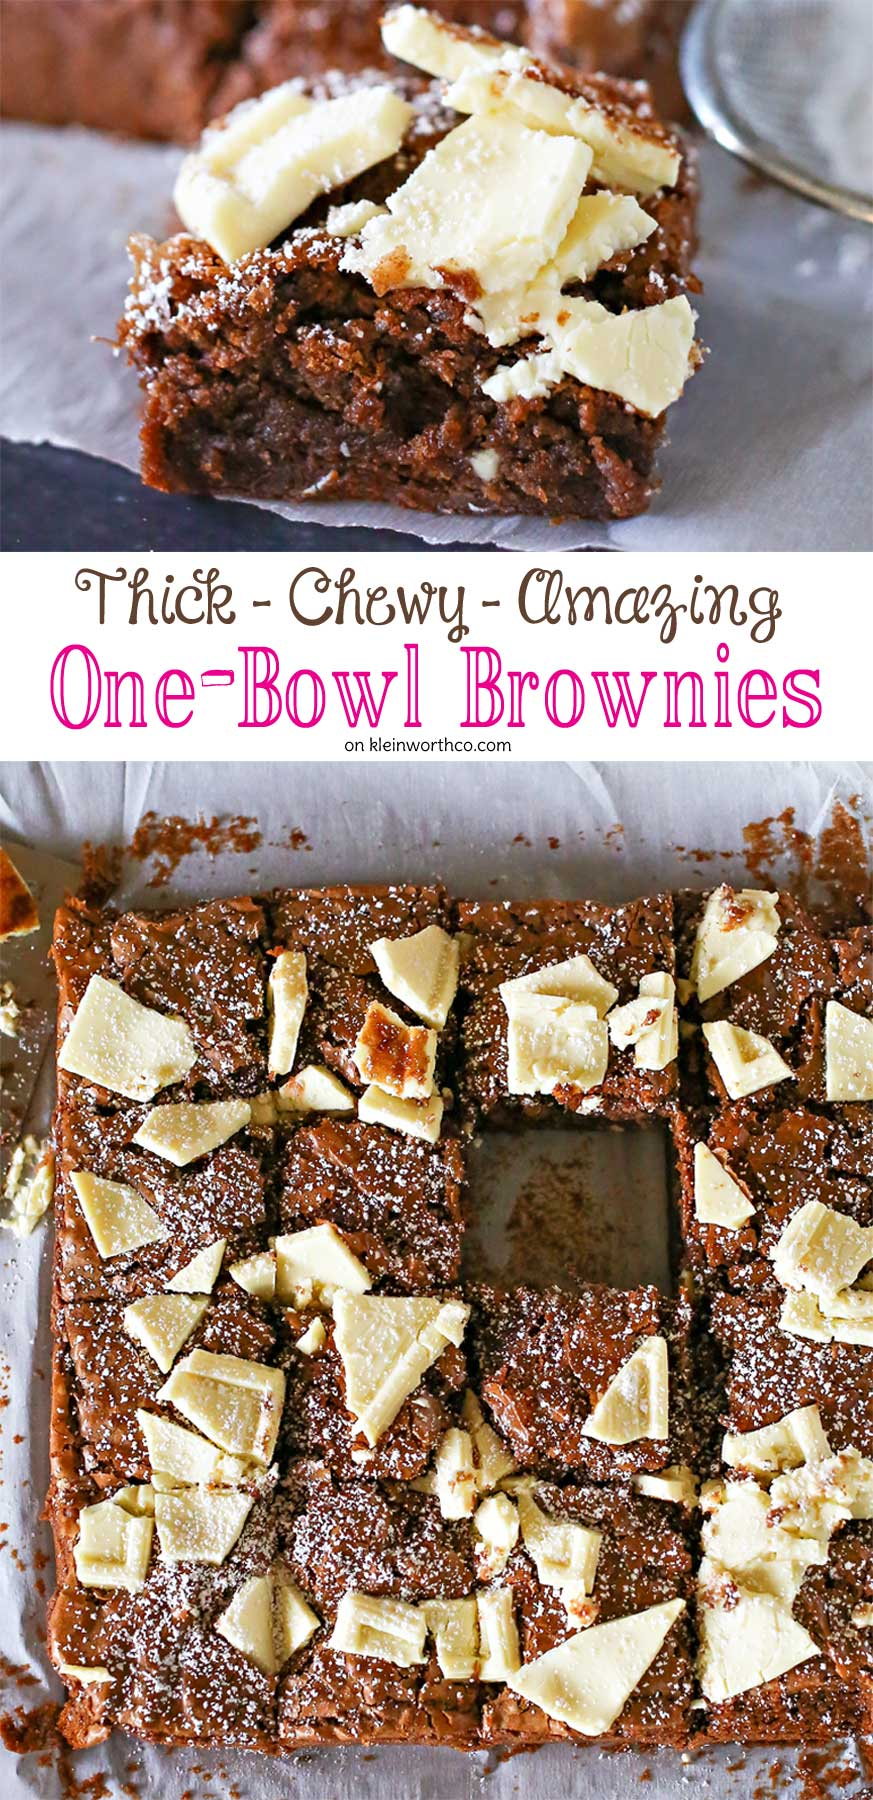 One Bowl Brownies- Thick, Chewy & Amazing- oh yeah- easy too!!!